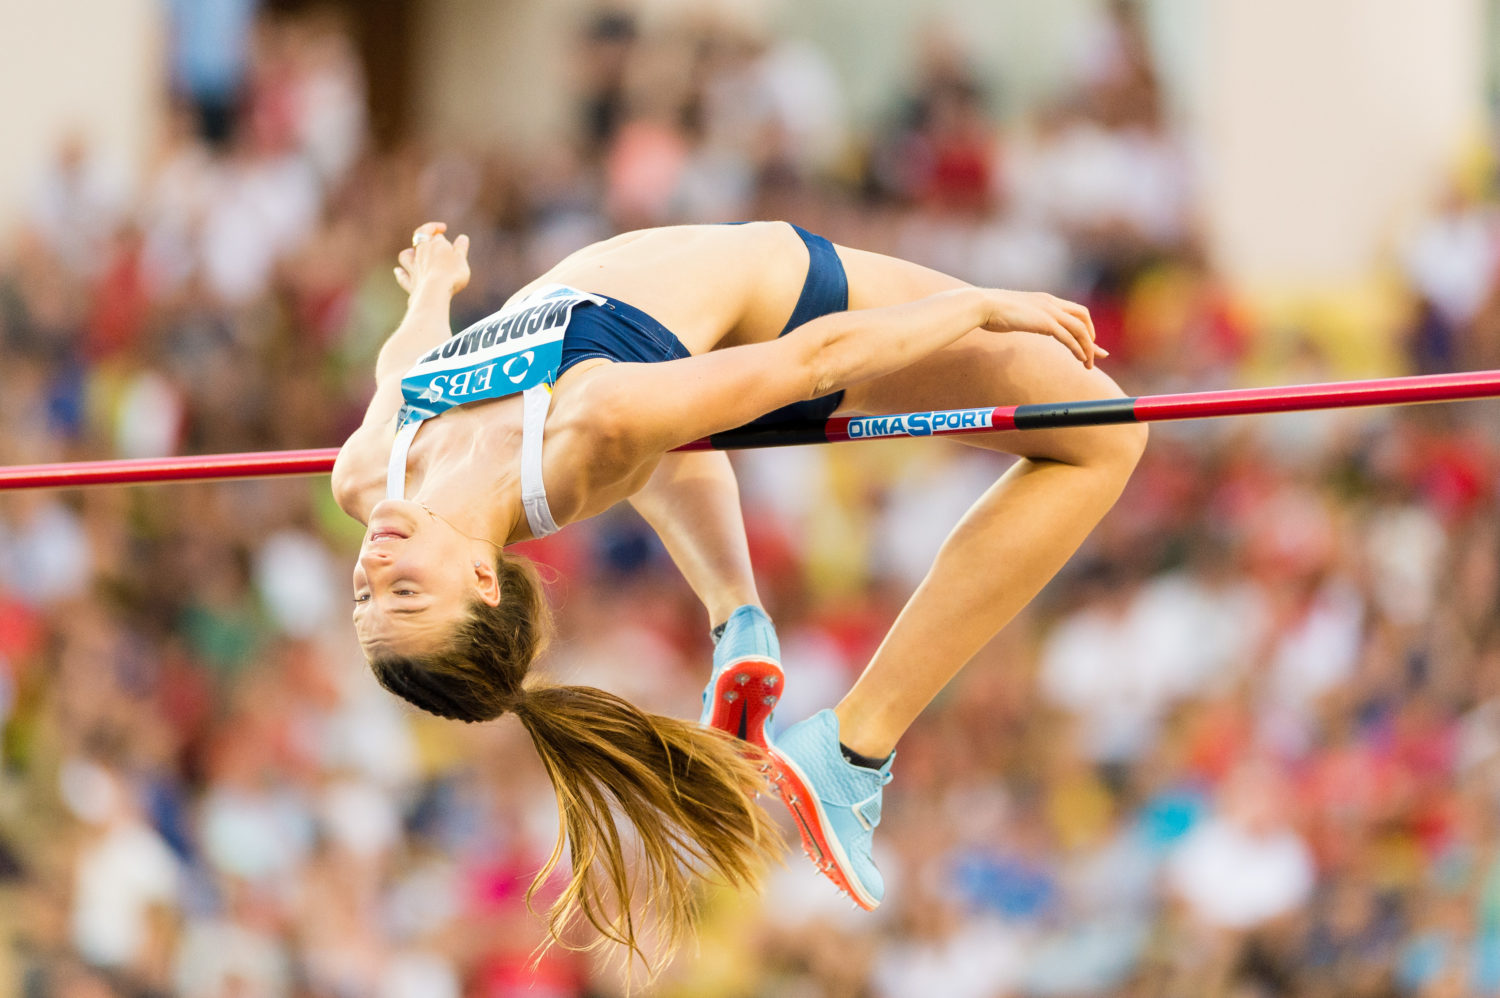 NSWIS athletes eyeing Tokyo selection at Australian Track & Field Championships Image